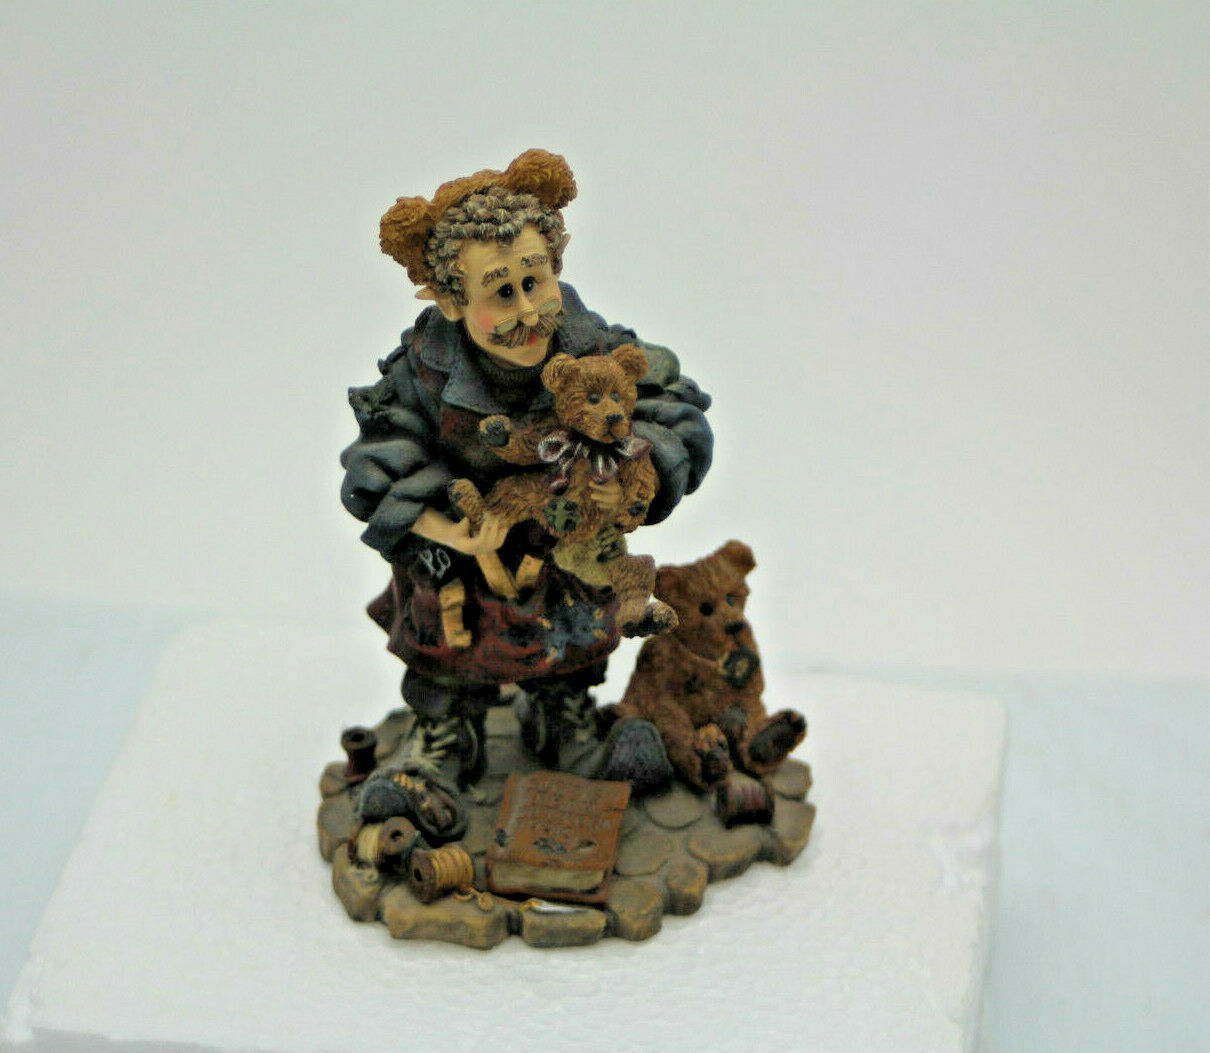 Primary image for  The Boyds Collection #36400 T.H Beam The Bearmaker Elf